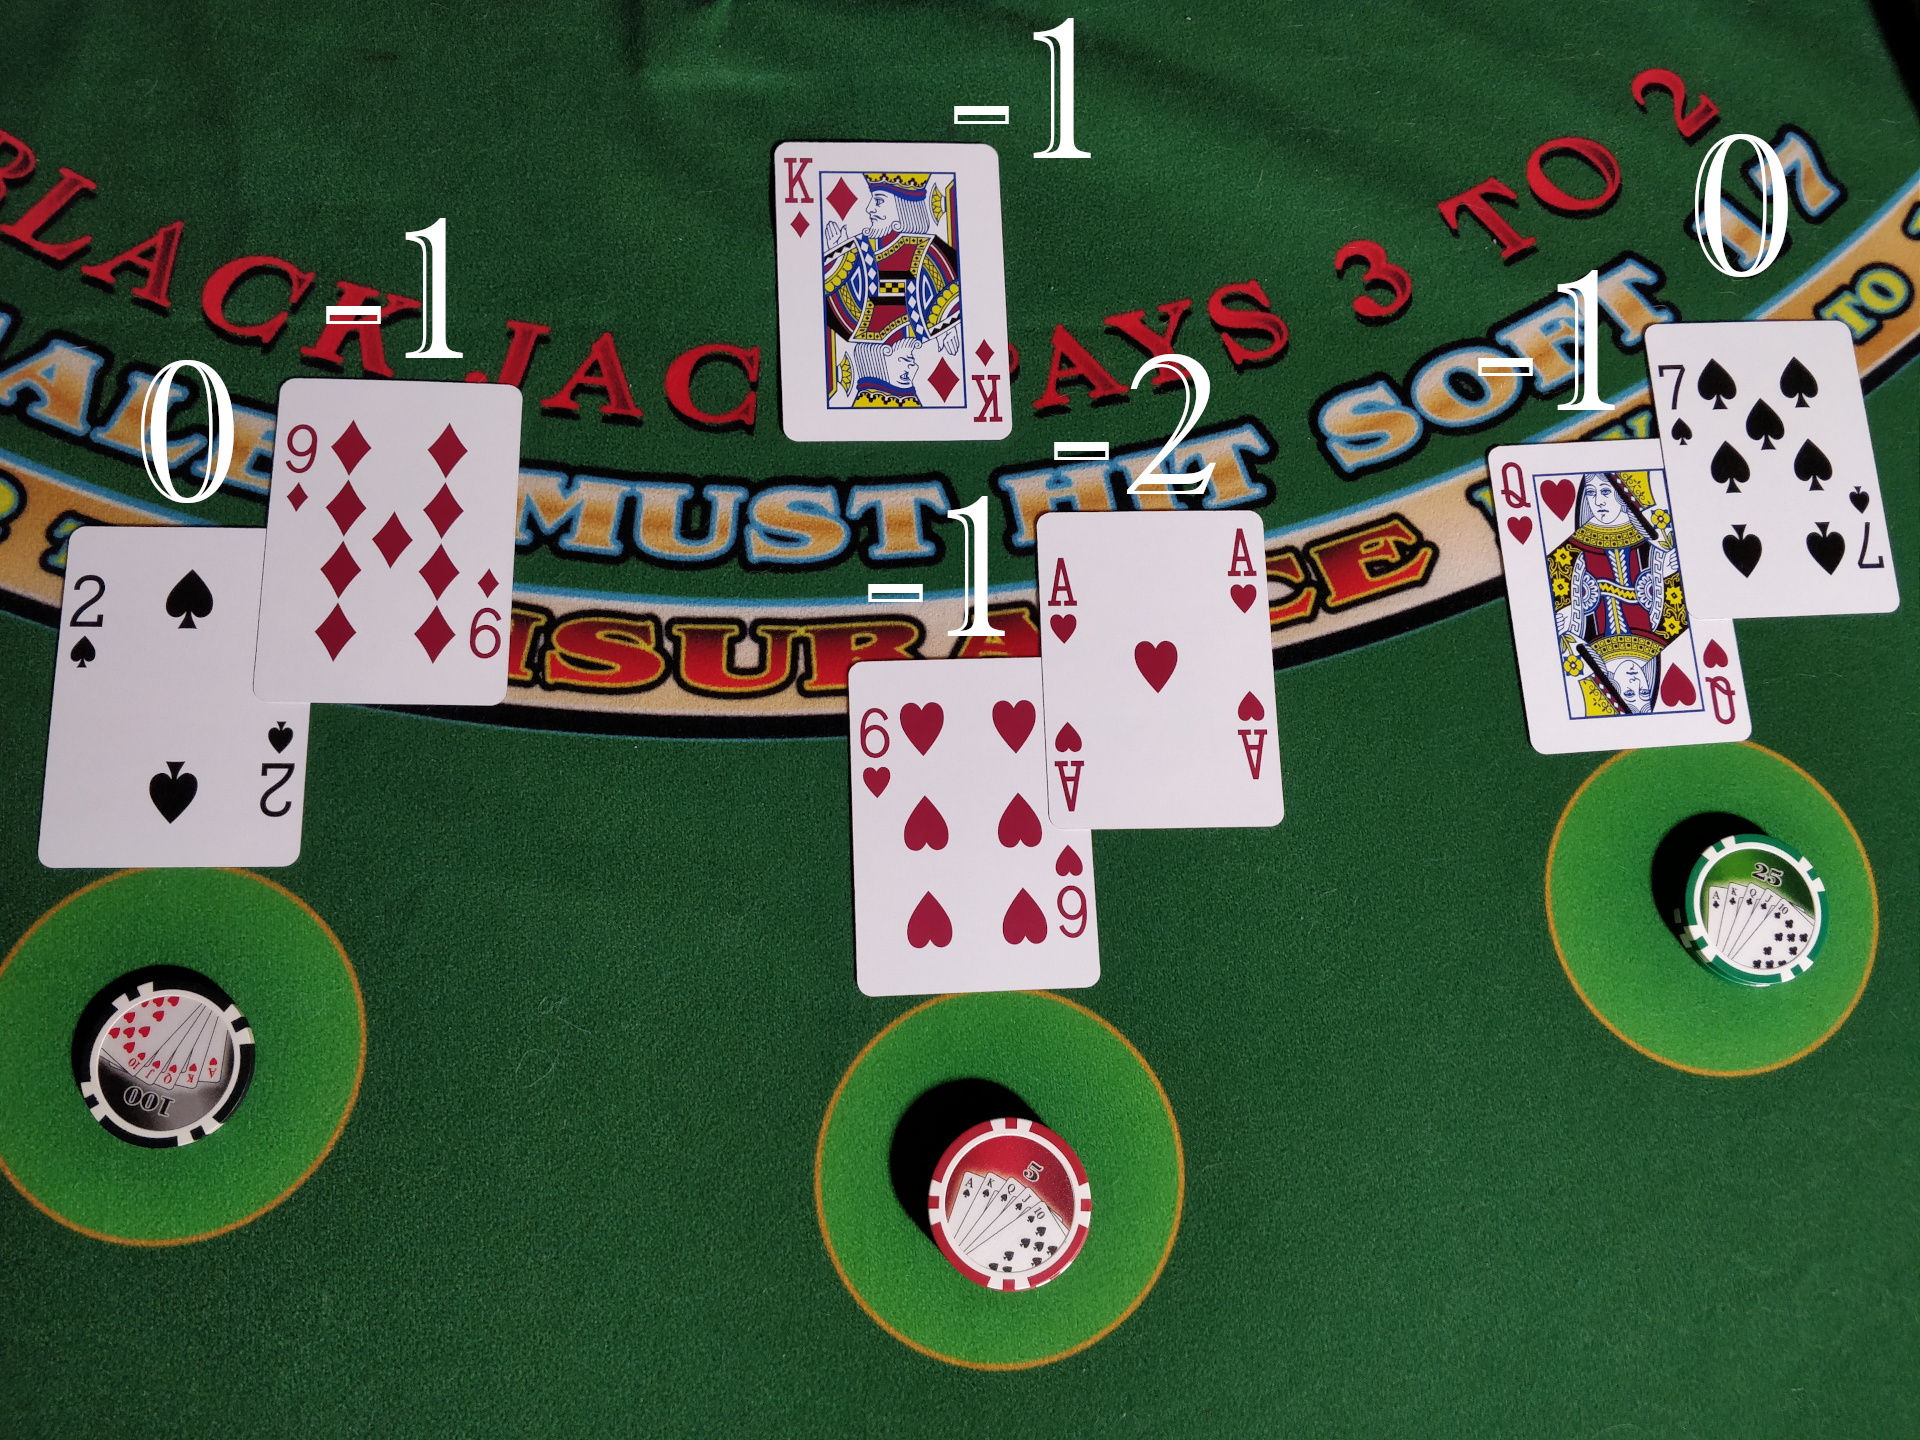 Running Count in Blackjack Card Counting